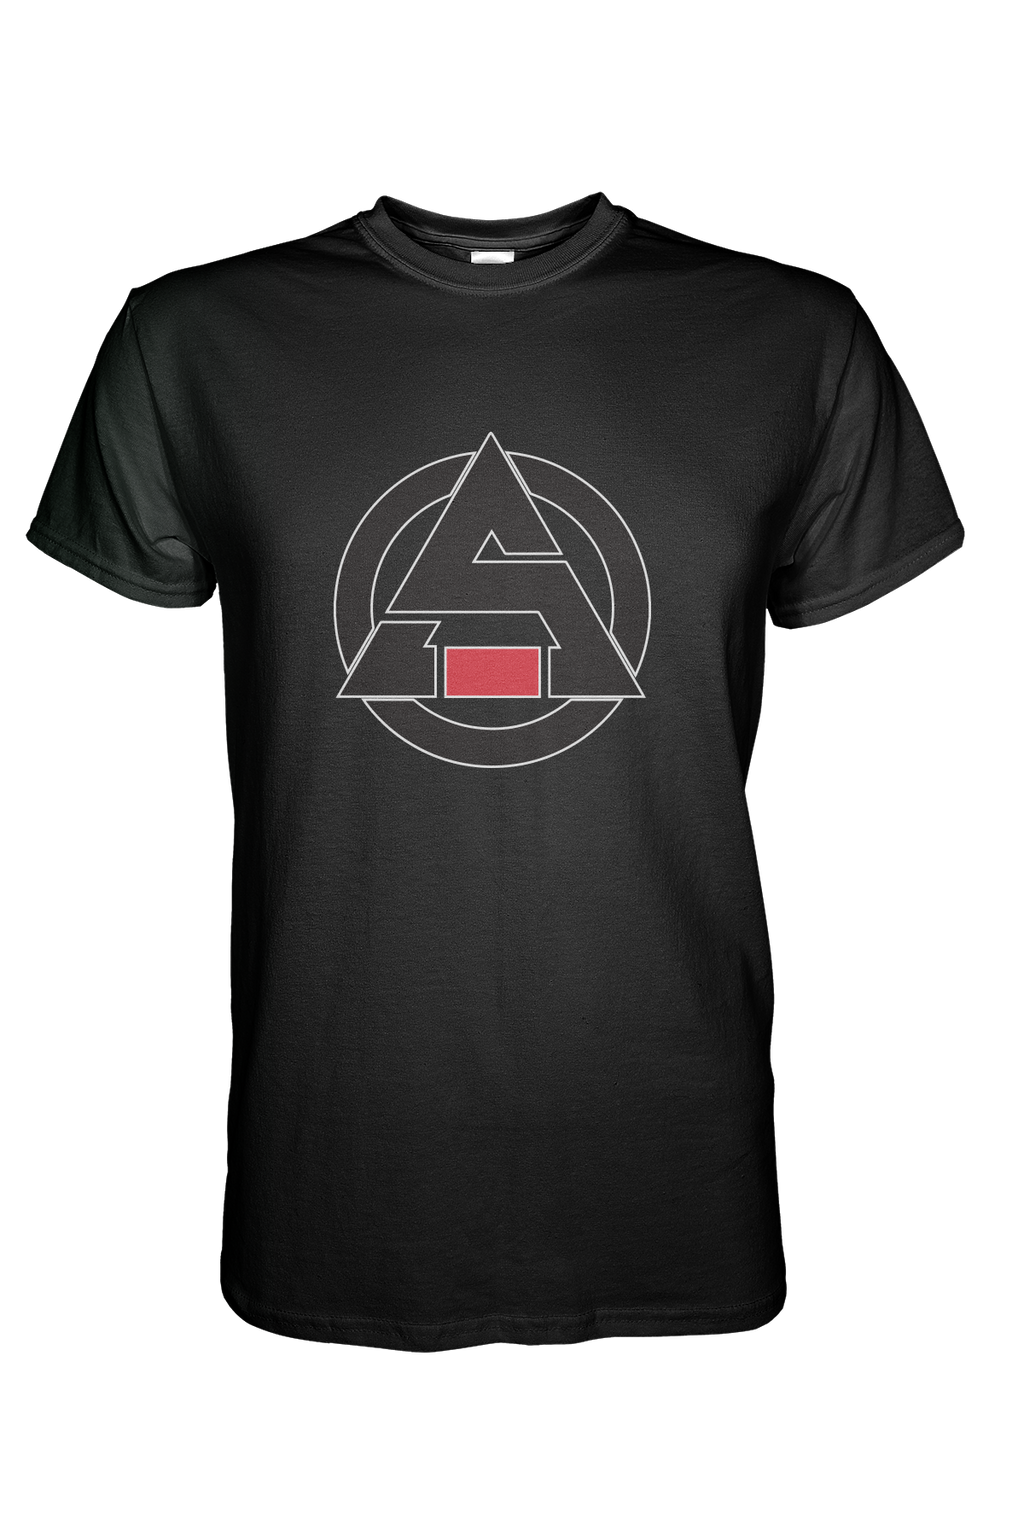 Addict Logo Shirt